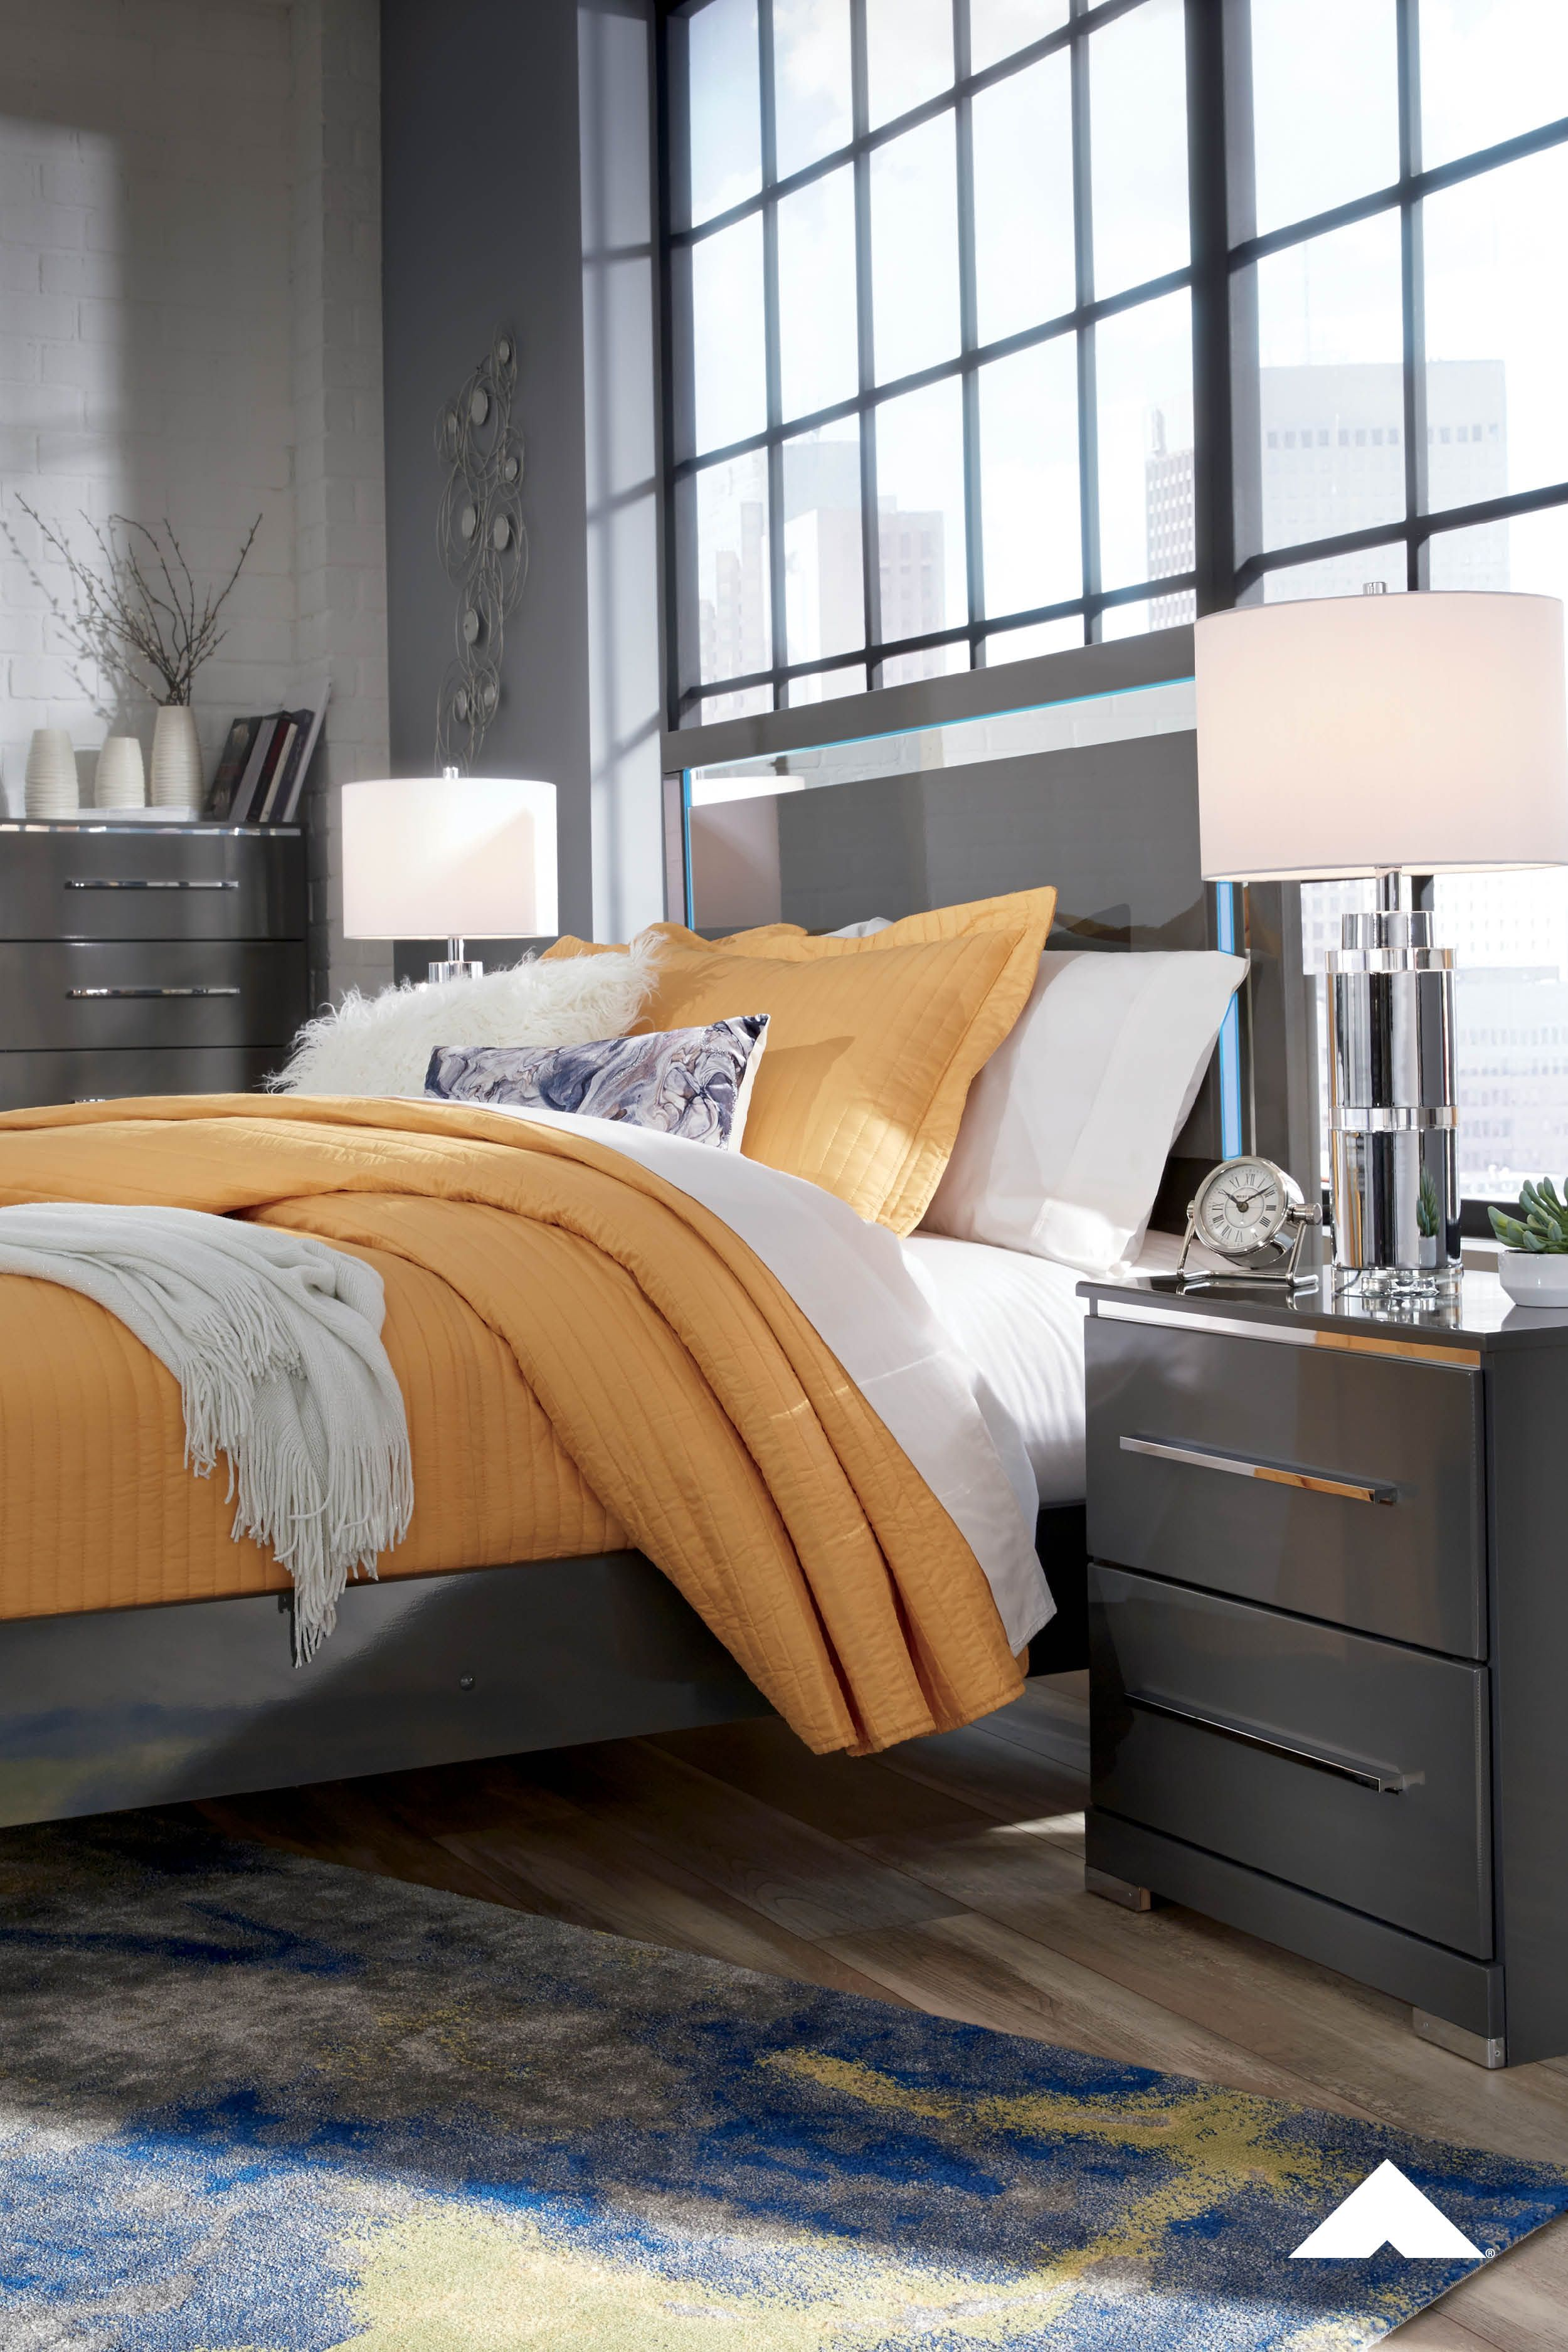 Steelson Gray Bedroom Set Nighttime is the light time